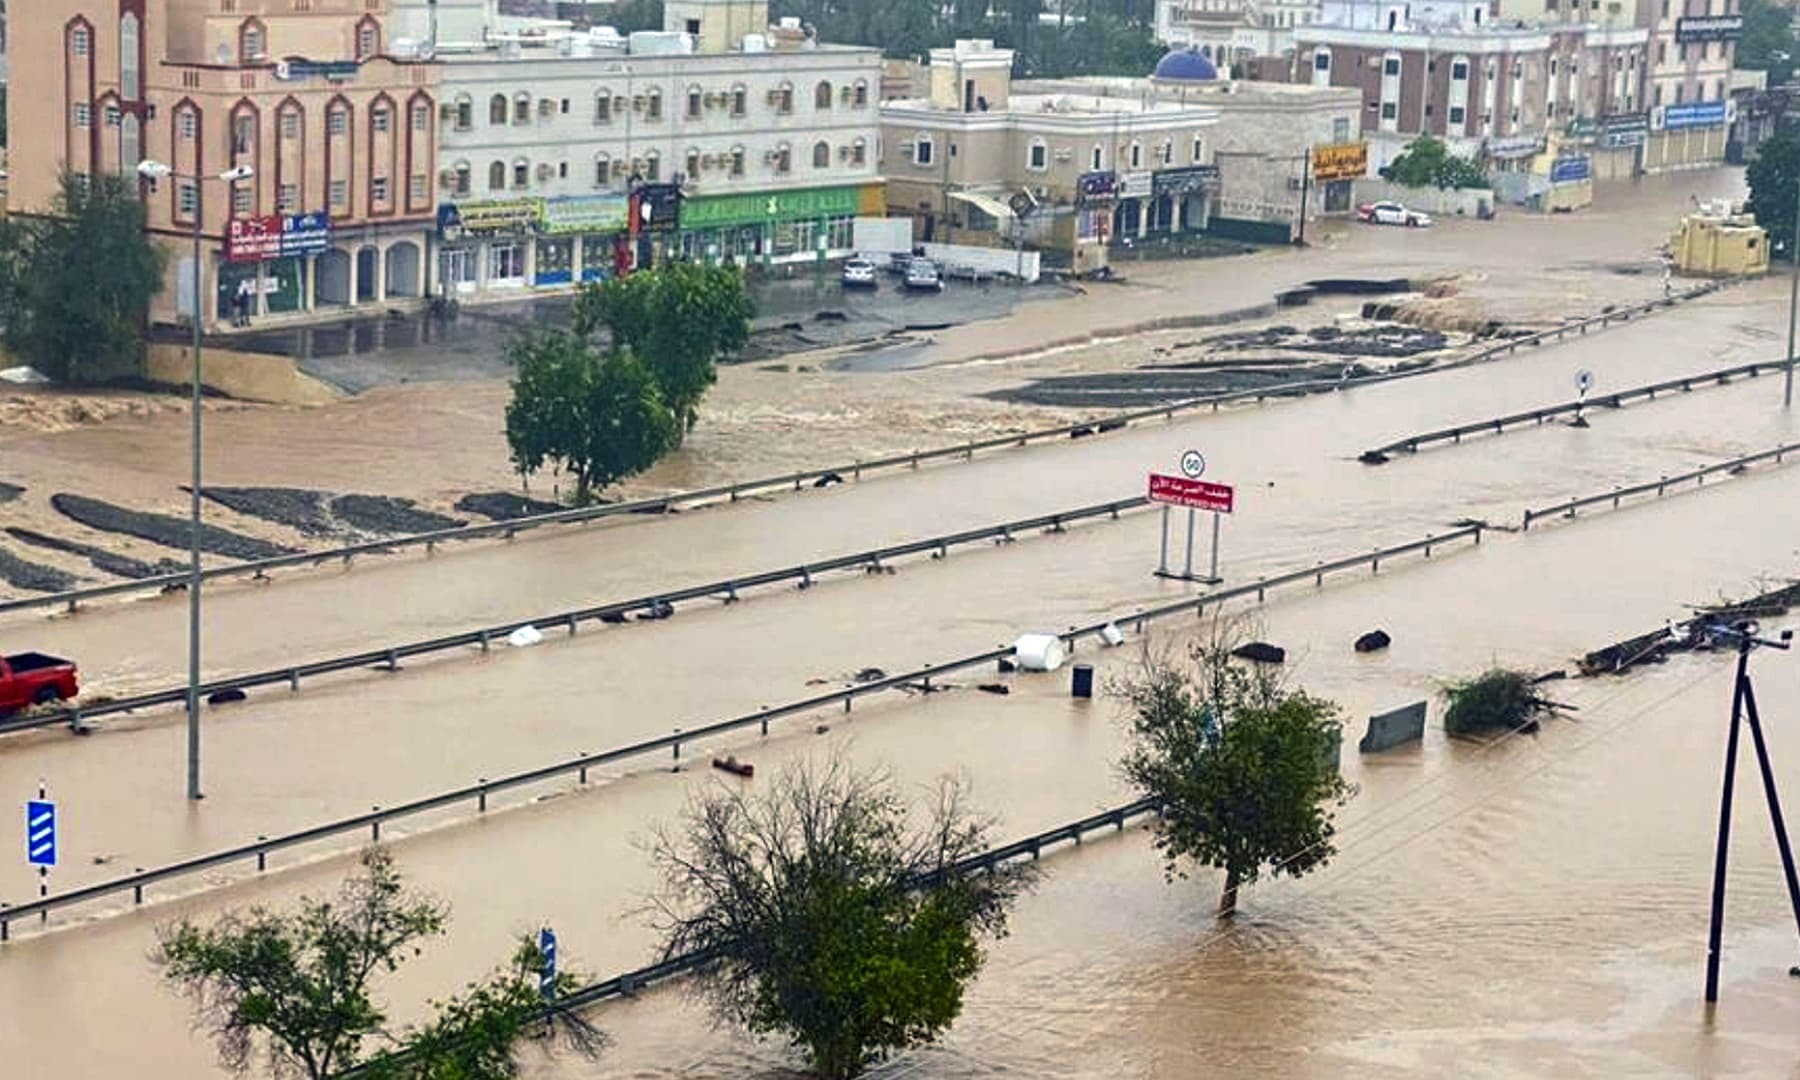 A flooded street of the Al Khaburah district is seen after Cyclone Shaheen, in Oman, Monday, Oct 4. — Oman News Agency via AP